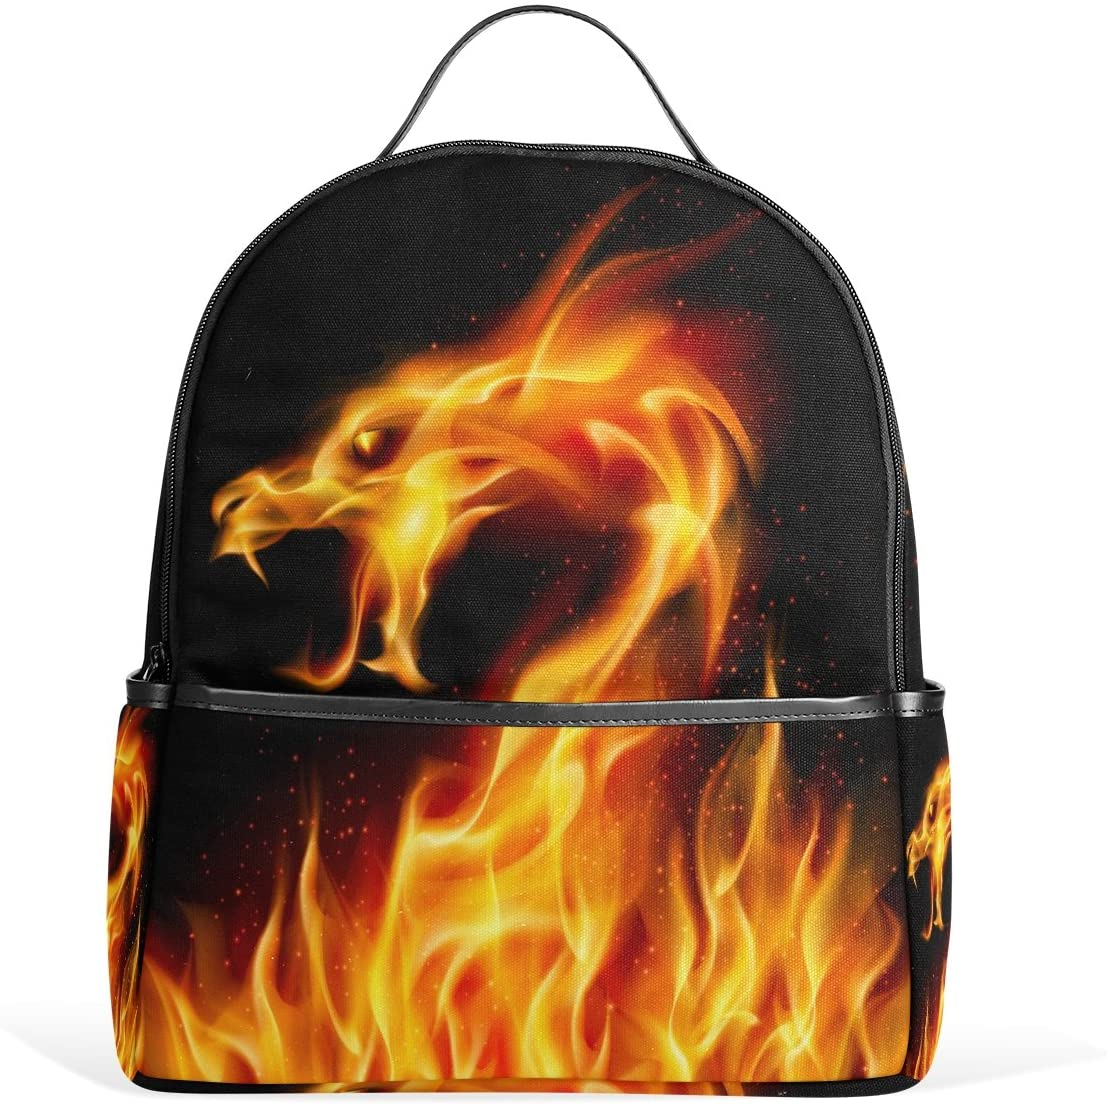 Use4 Fire Dragon Polyester Backpack School Travel Bag